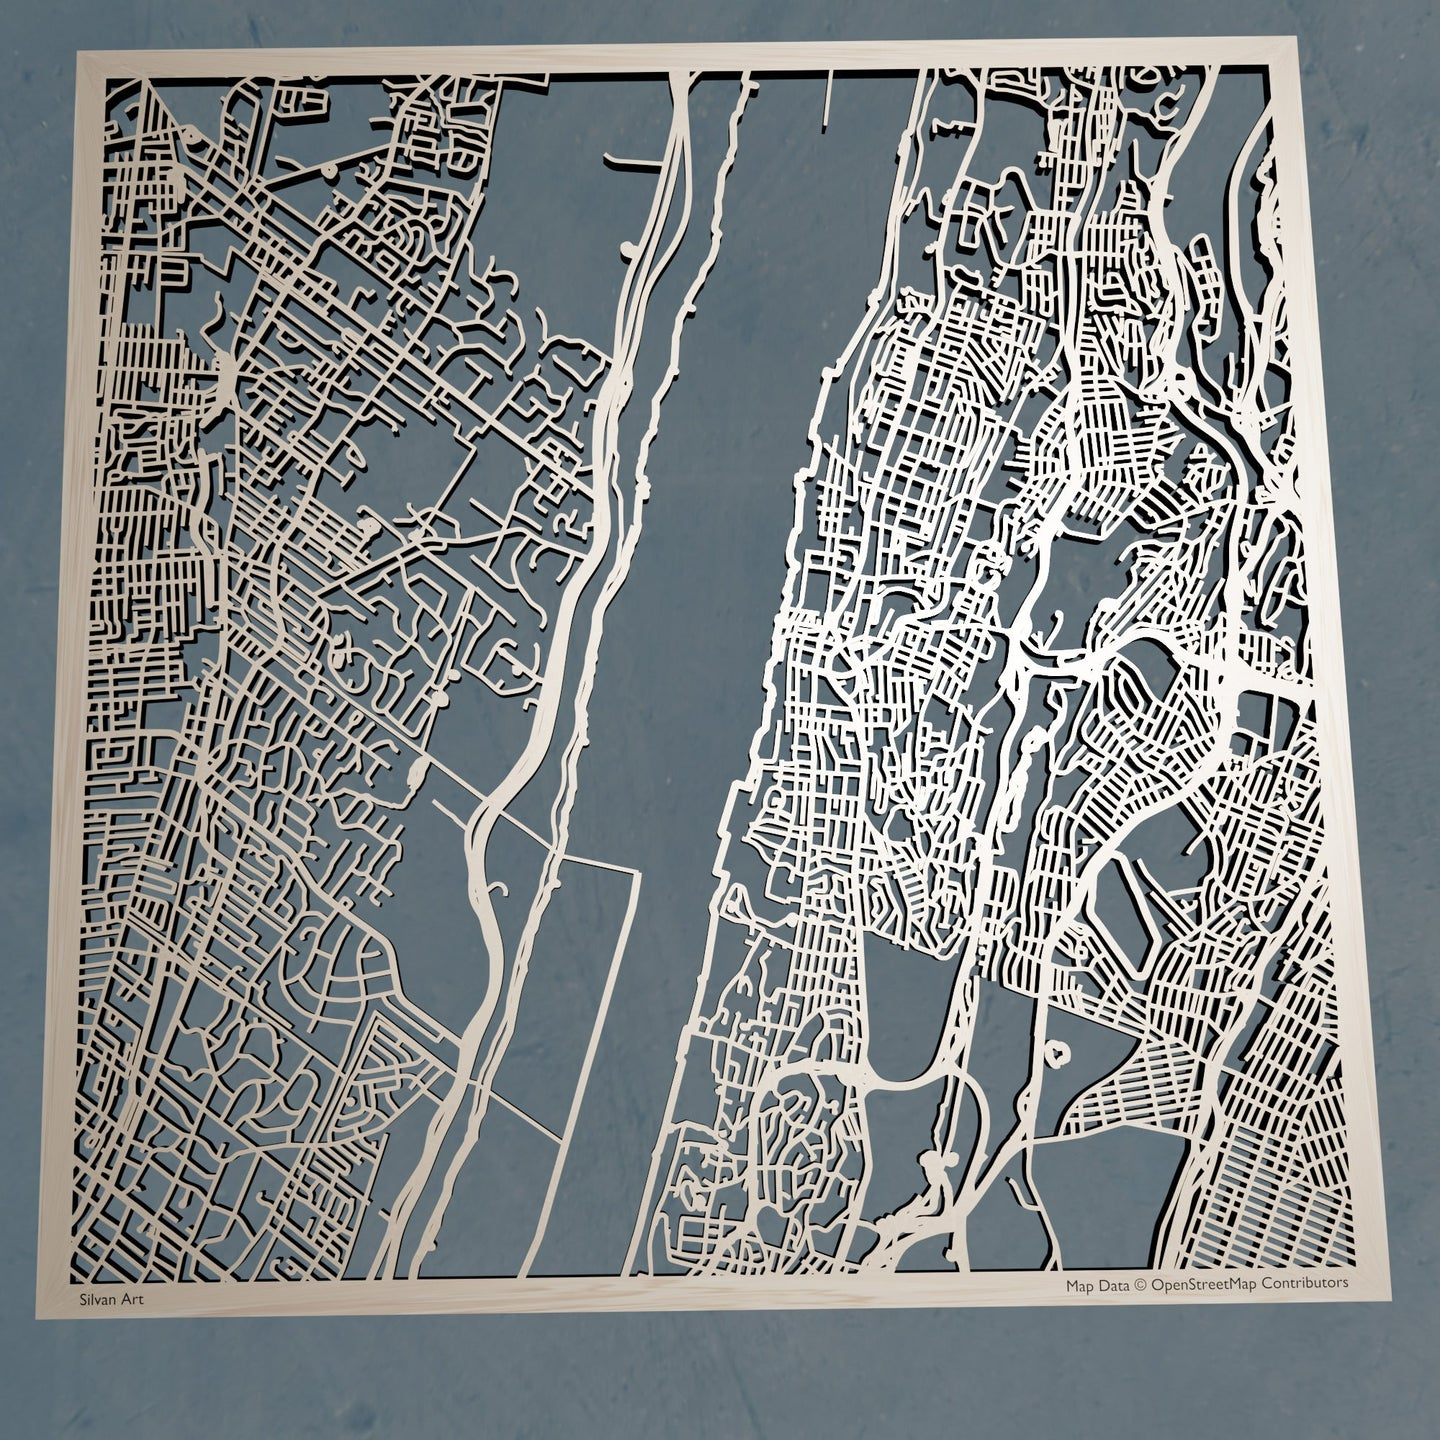 Yonkers New York - 3D Wooden Laser Cut Map | Unique Gift